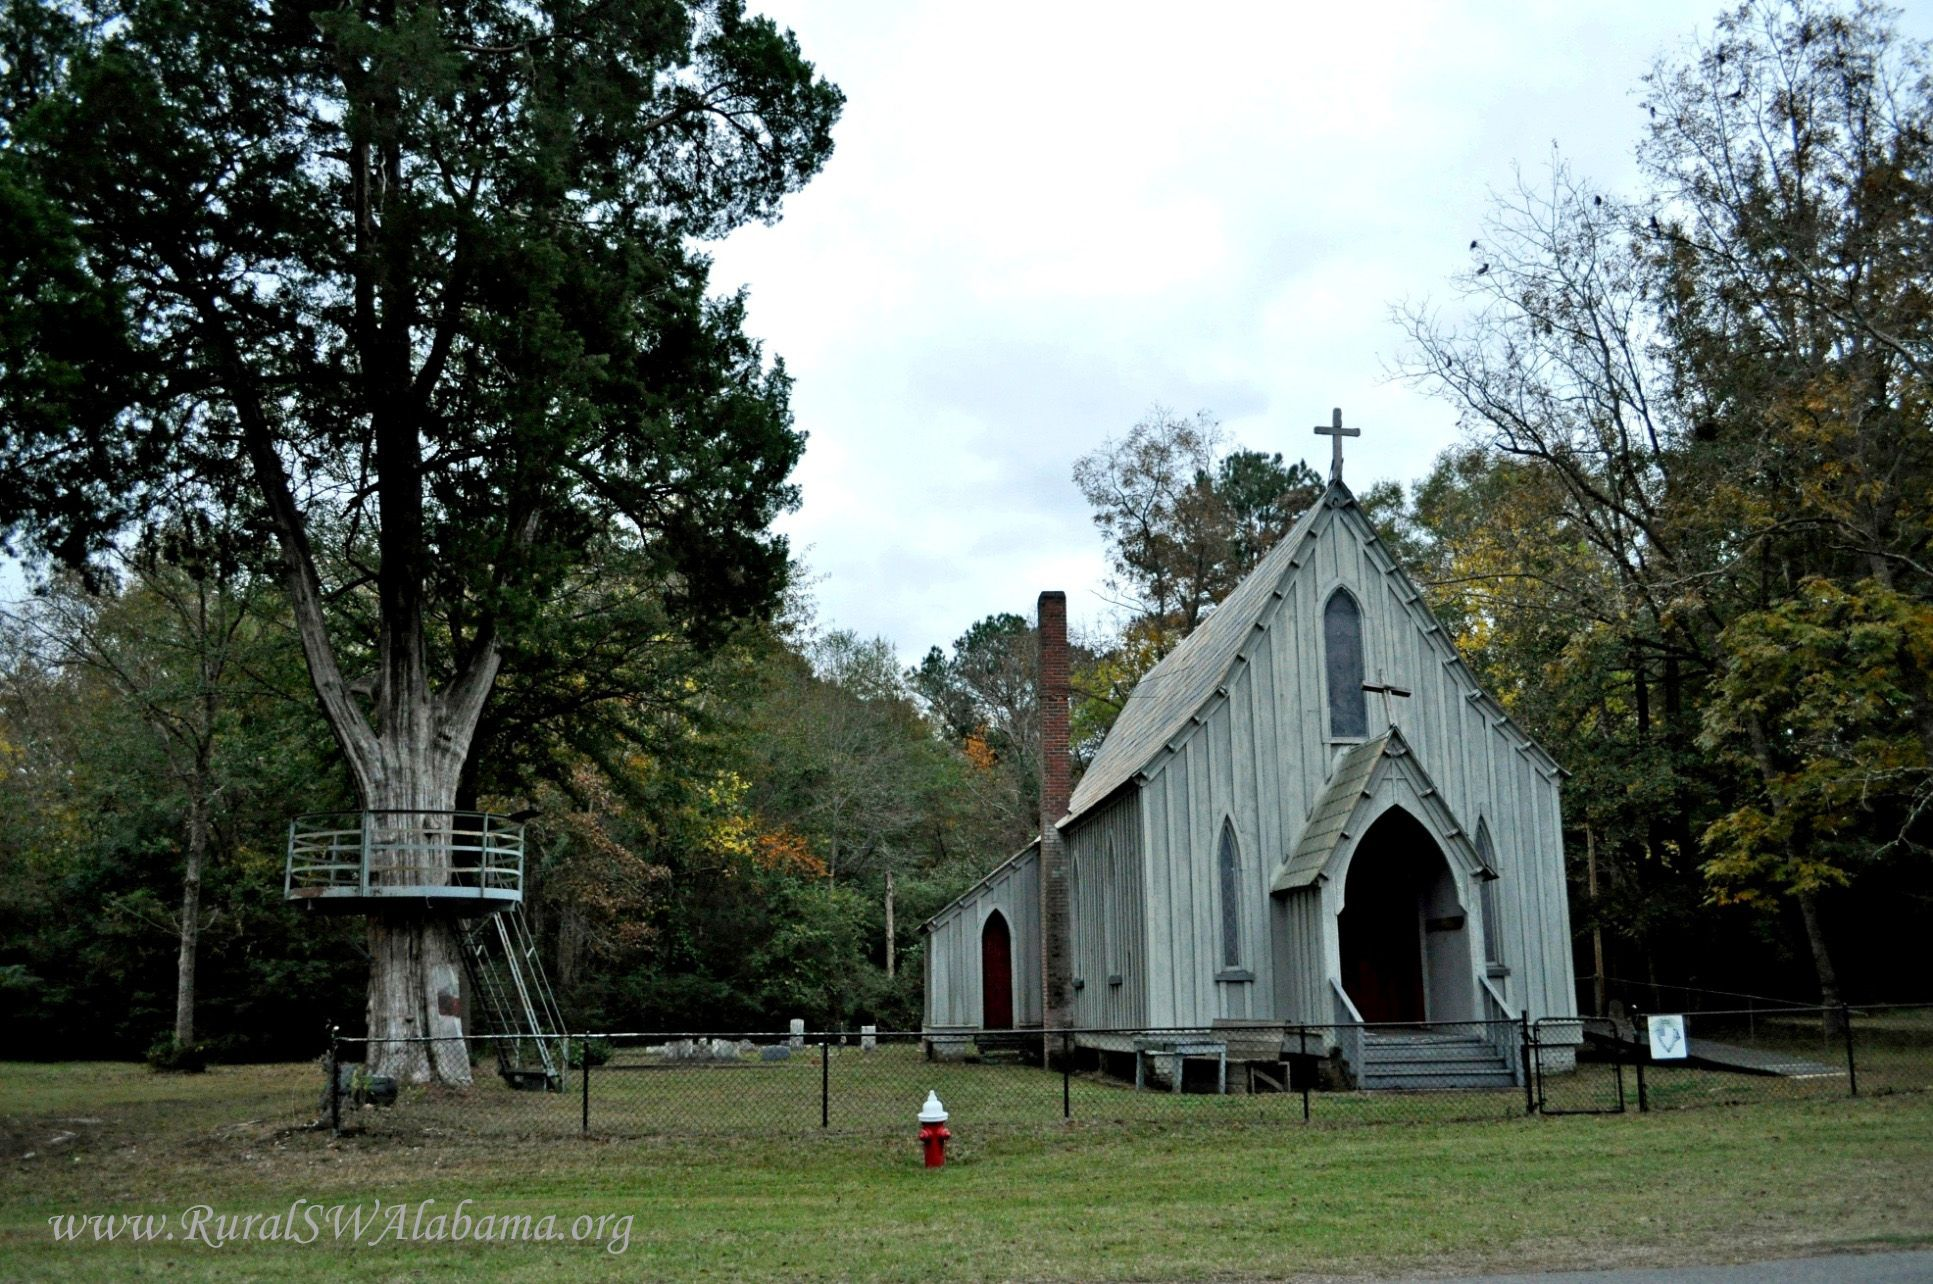 st john s episcopal church at forkland al built listed on st john s episcopal church at forkland al built 1859 listed on the nrhp for additional details go to ruralswalabama org attractions s